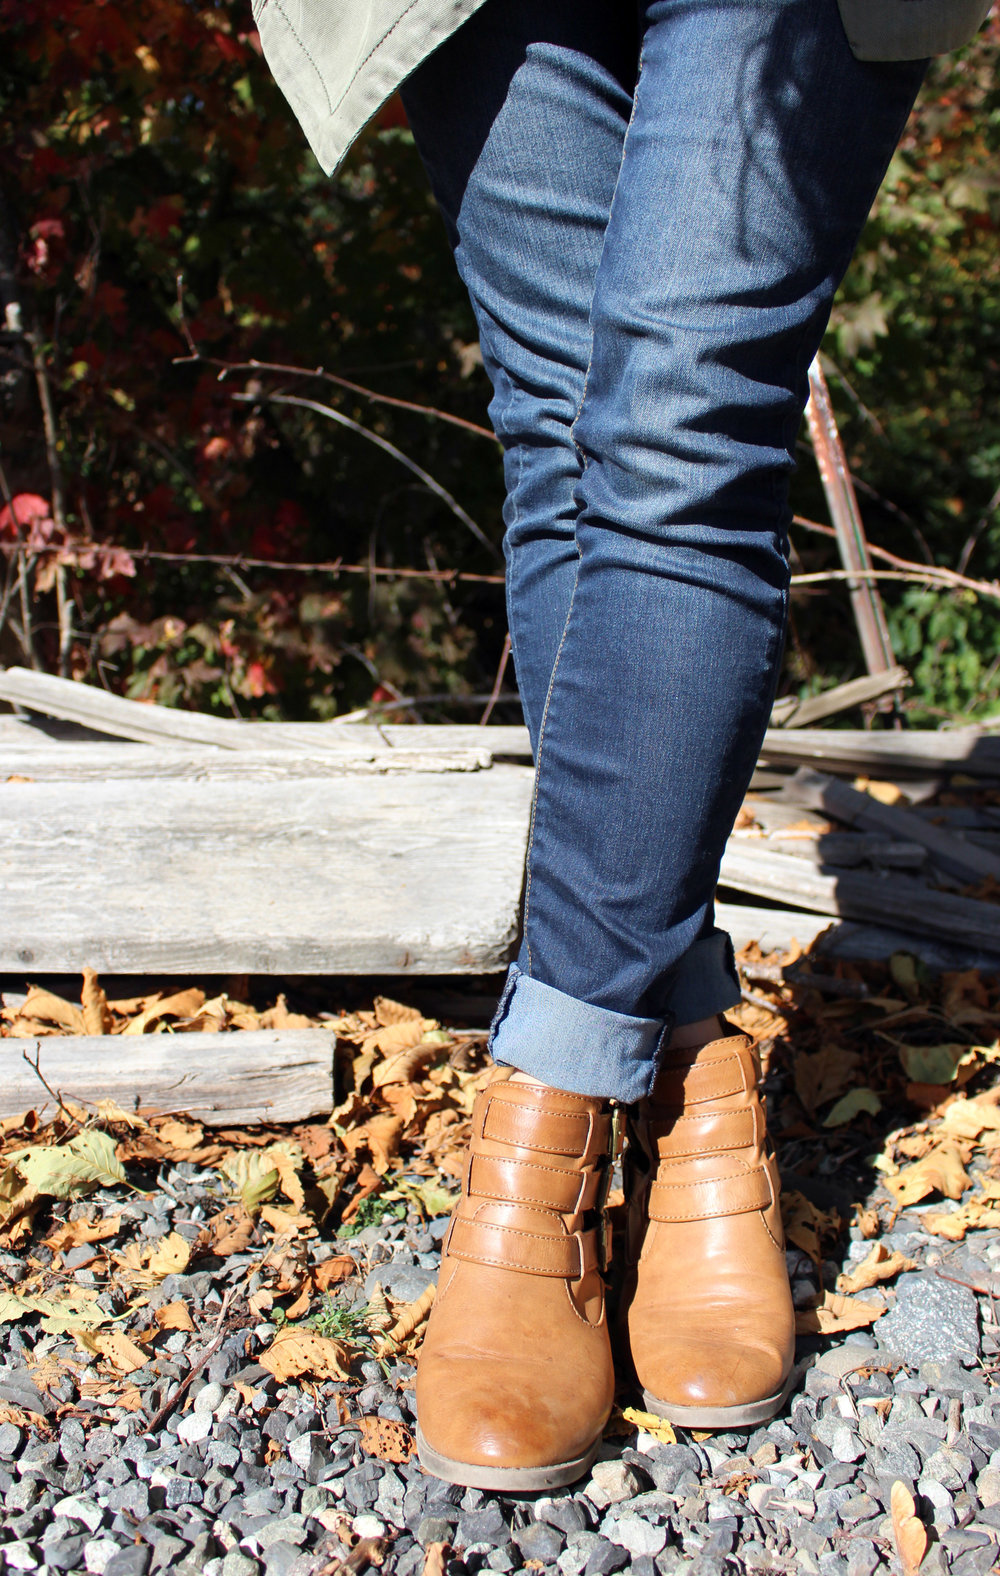 Simple Staples for your Wardrobe to Help Transition into Fall